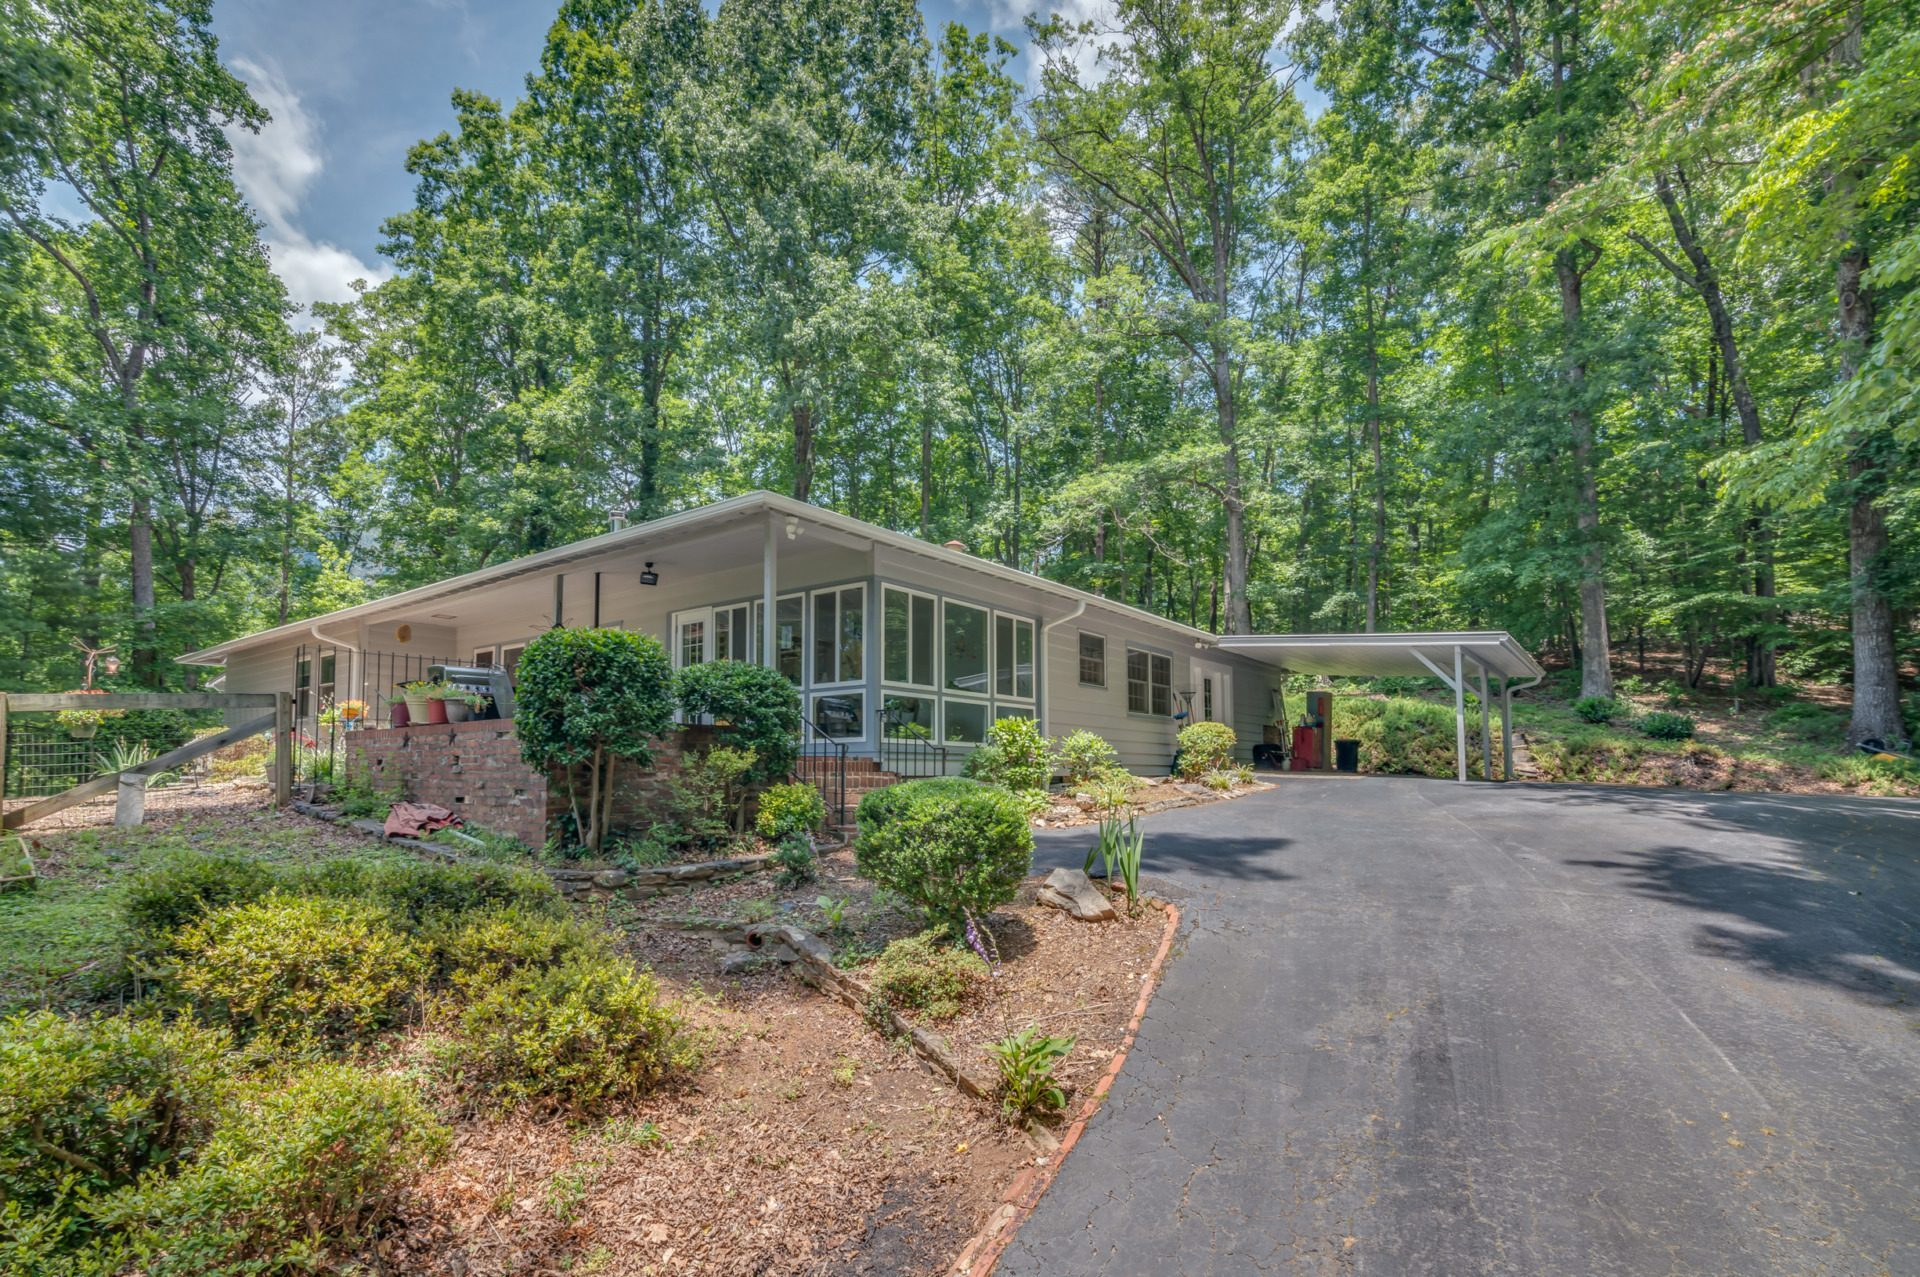 Under Contract: Tryon cottage with mountain view